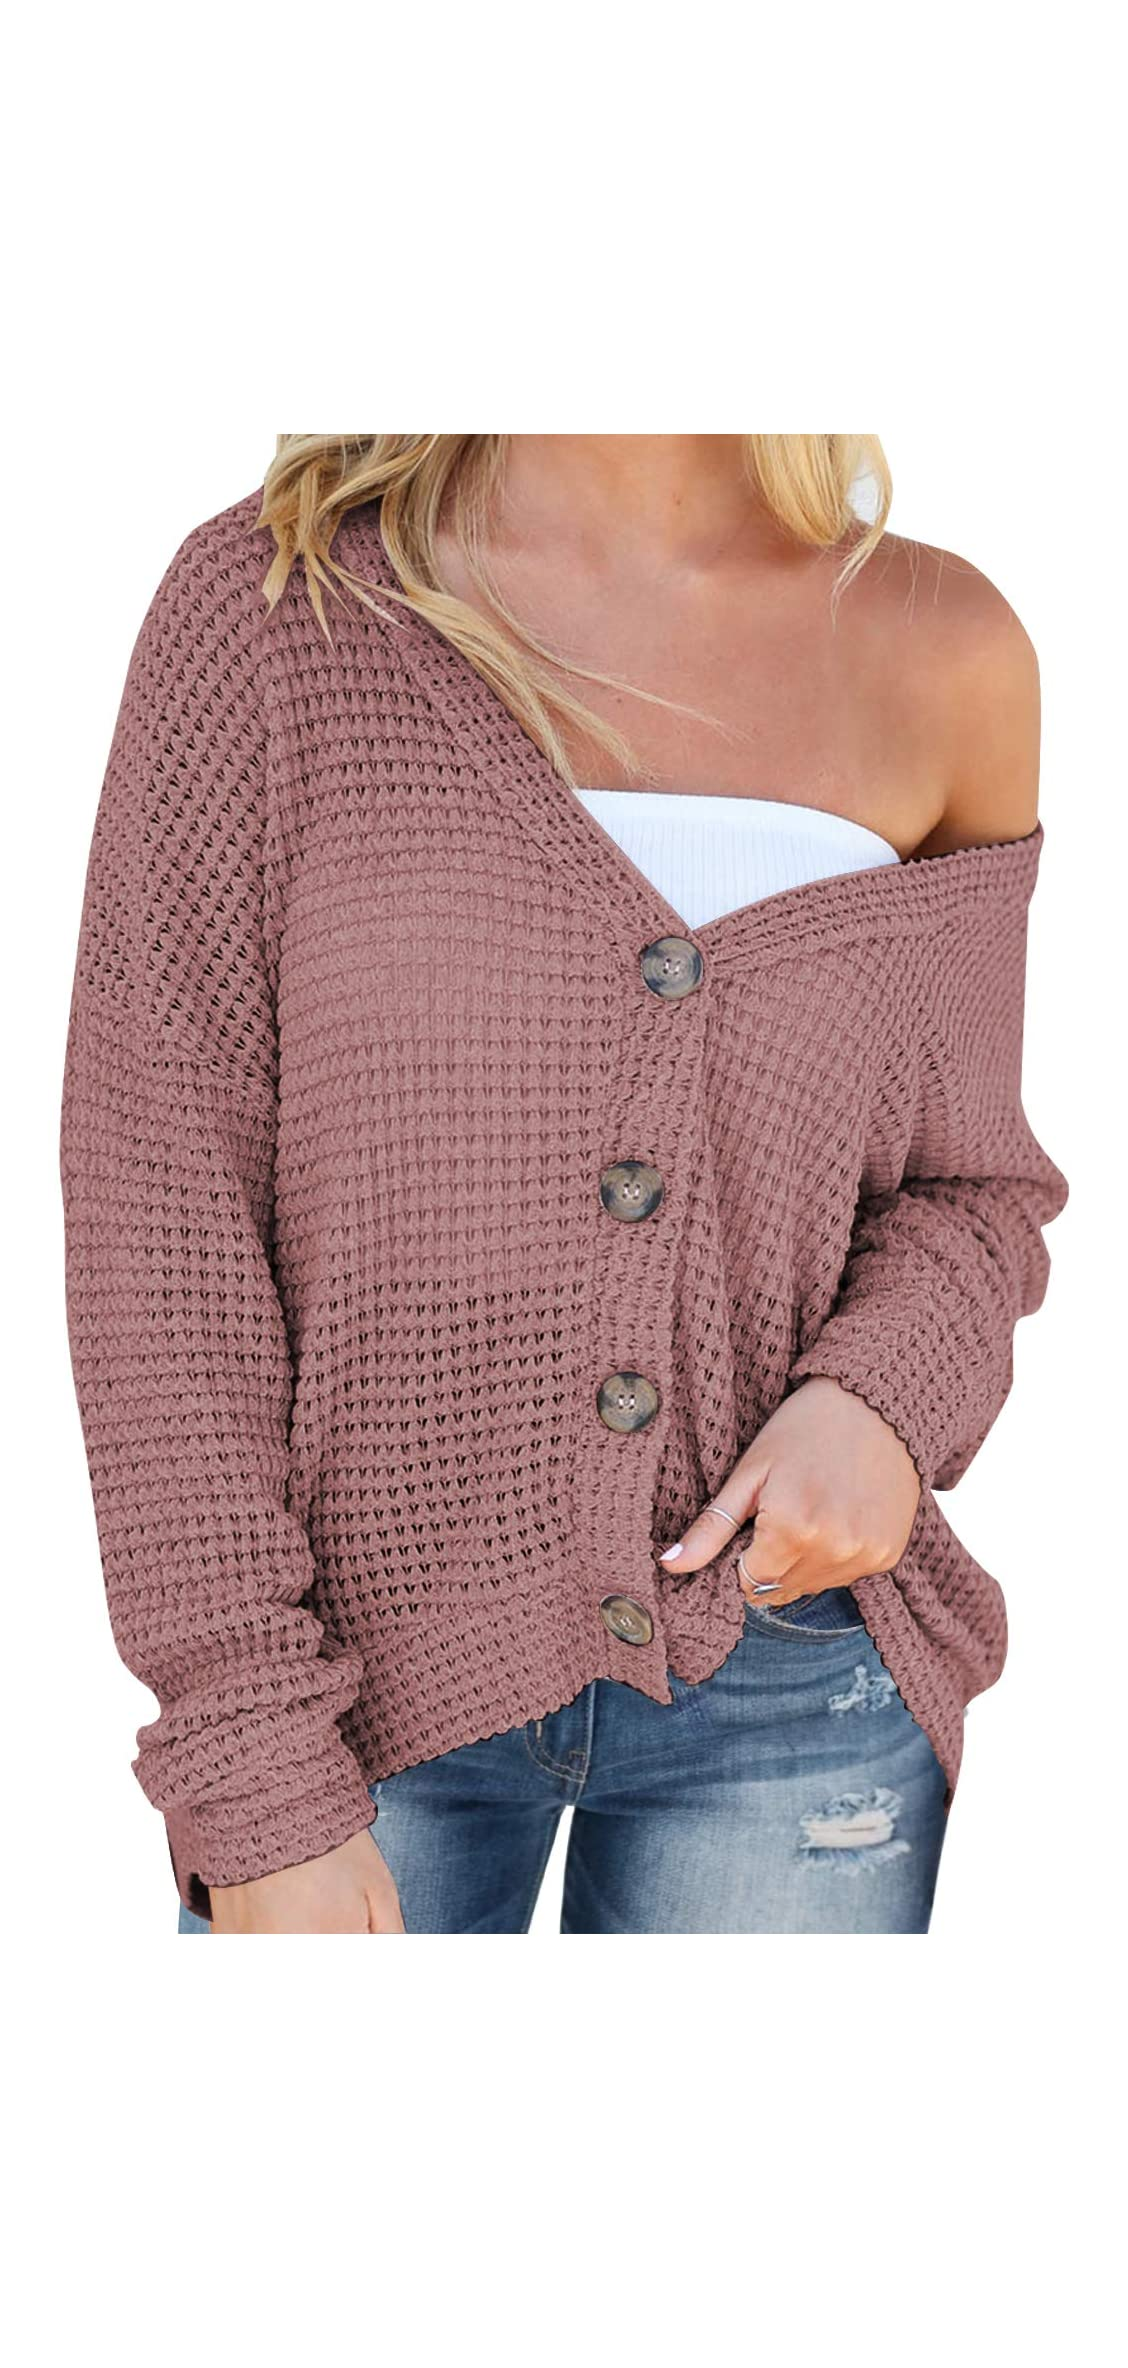 Women's Casual Tops Long Sleeve V Neck Button Down Shirts